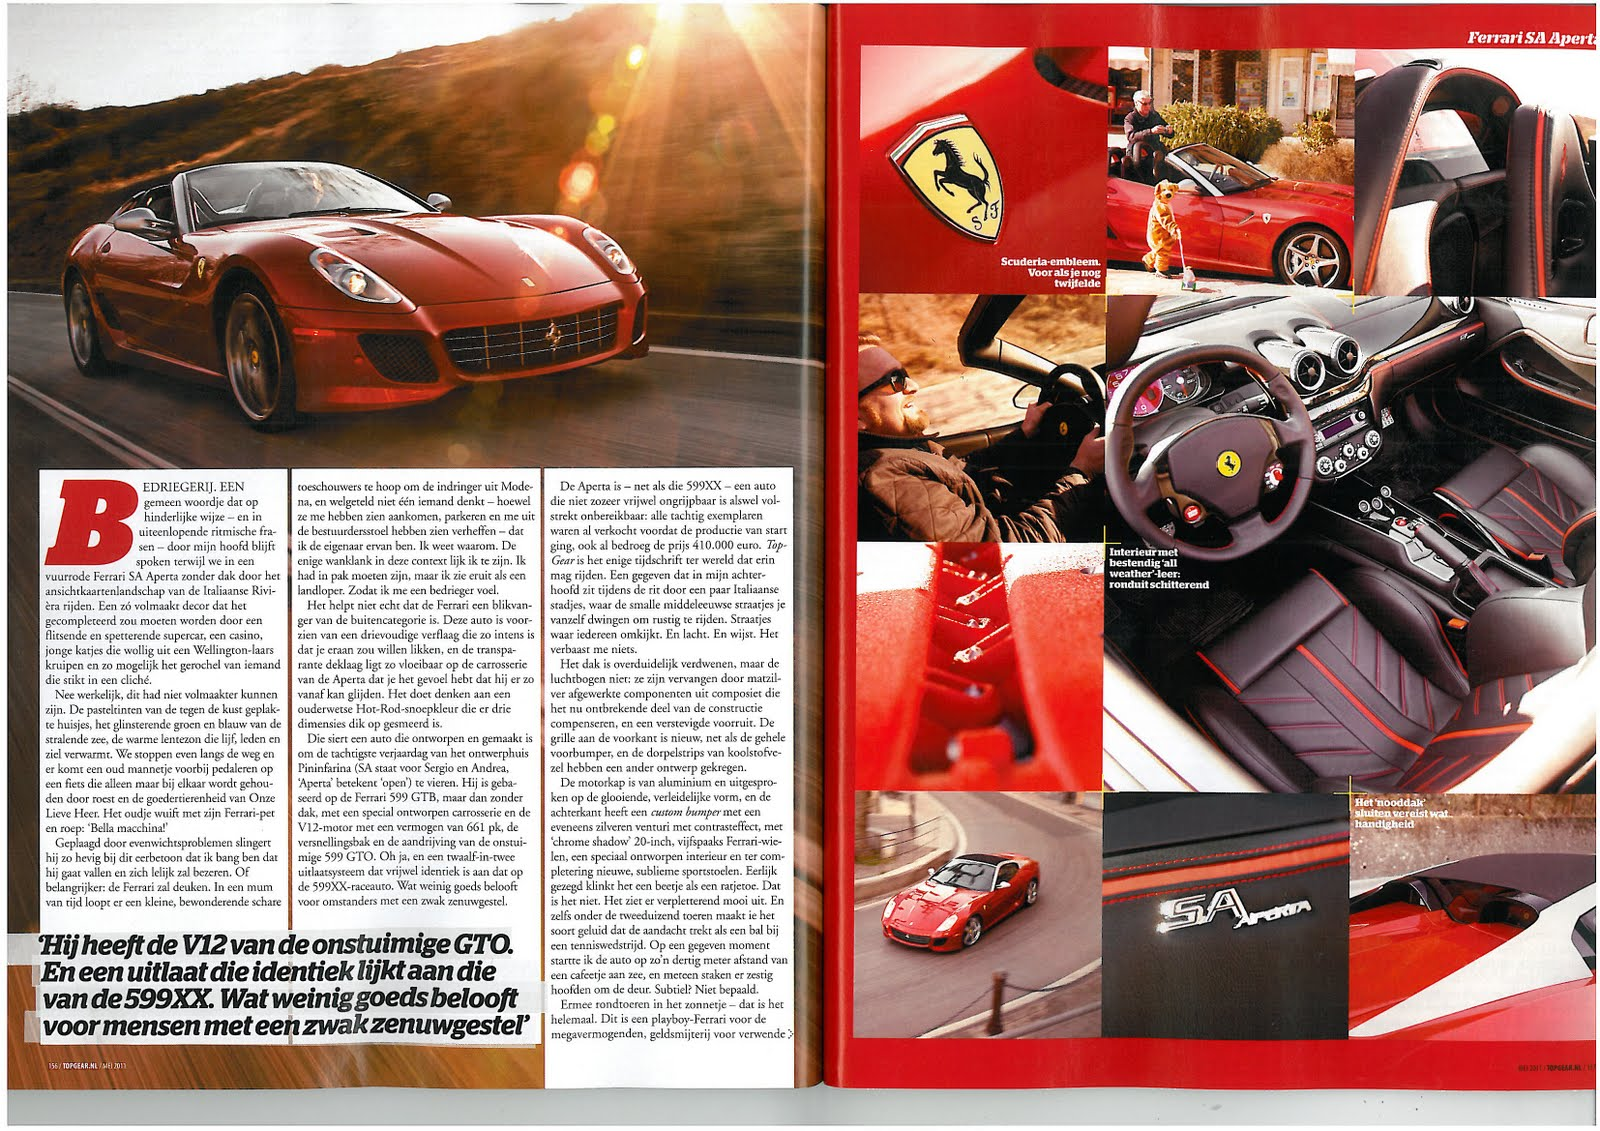 fga media ferrari sa aperta in top gear magazine. Black Bedroom Furniture Sets. Home Design Ideas